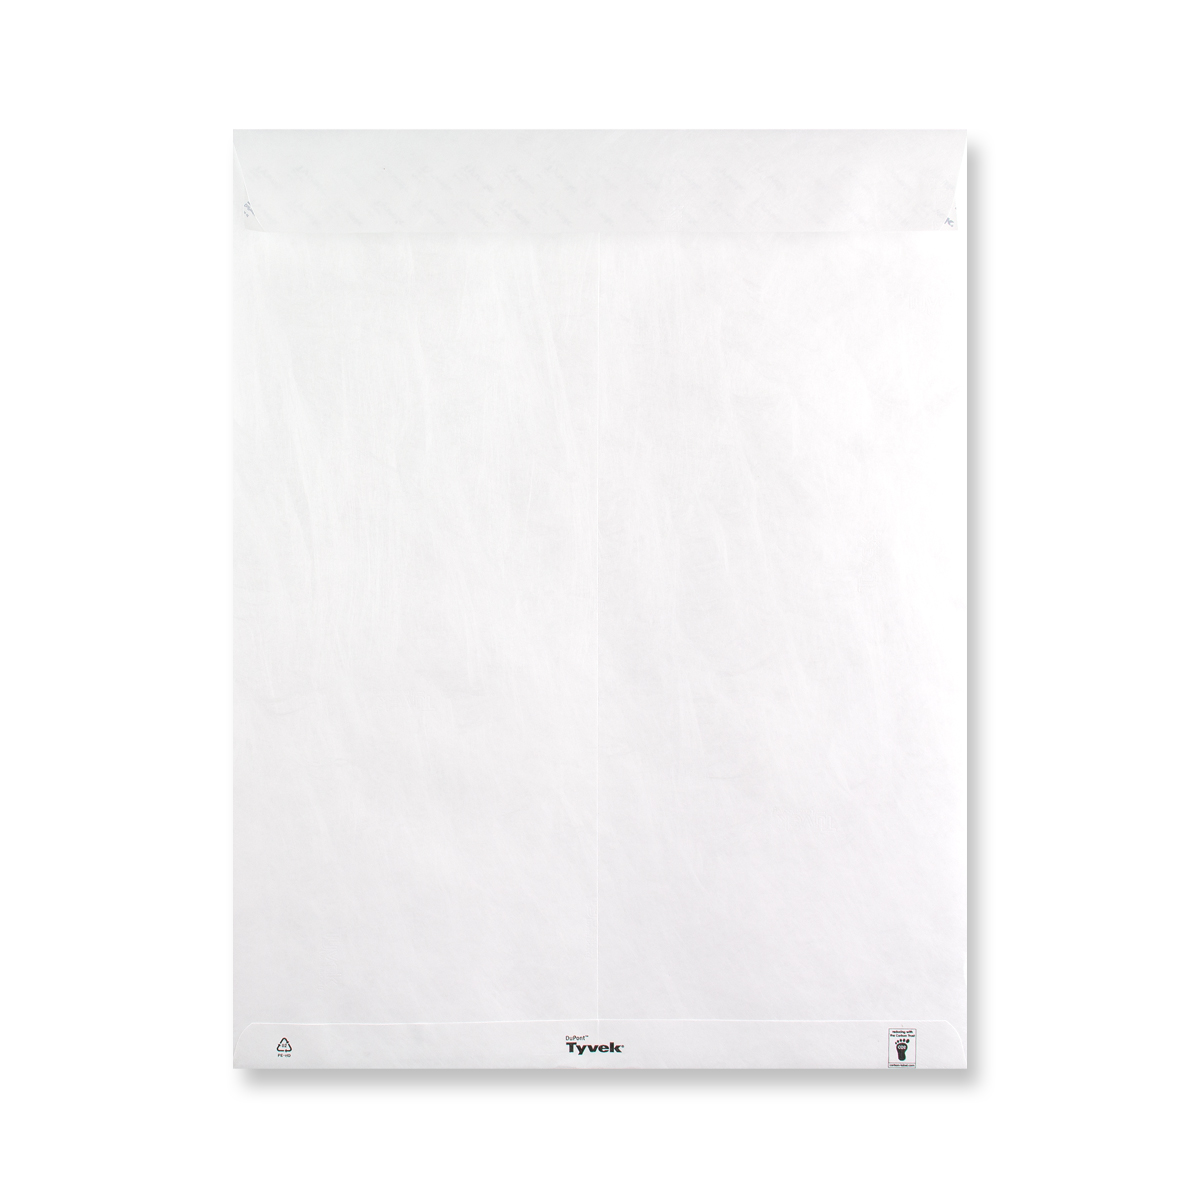 394 x 305mm WHITE TYVEK ENVELOPES